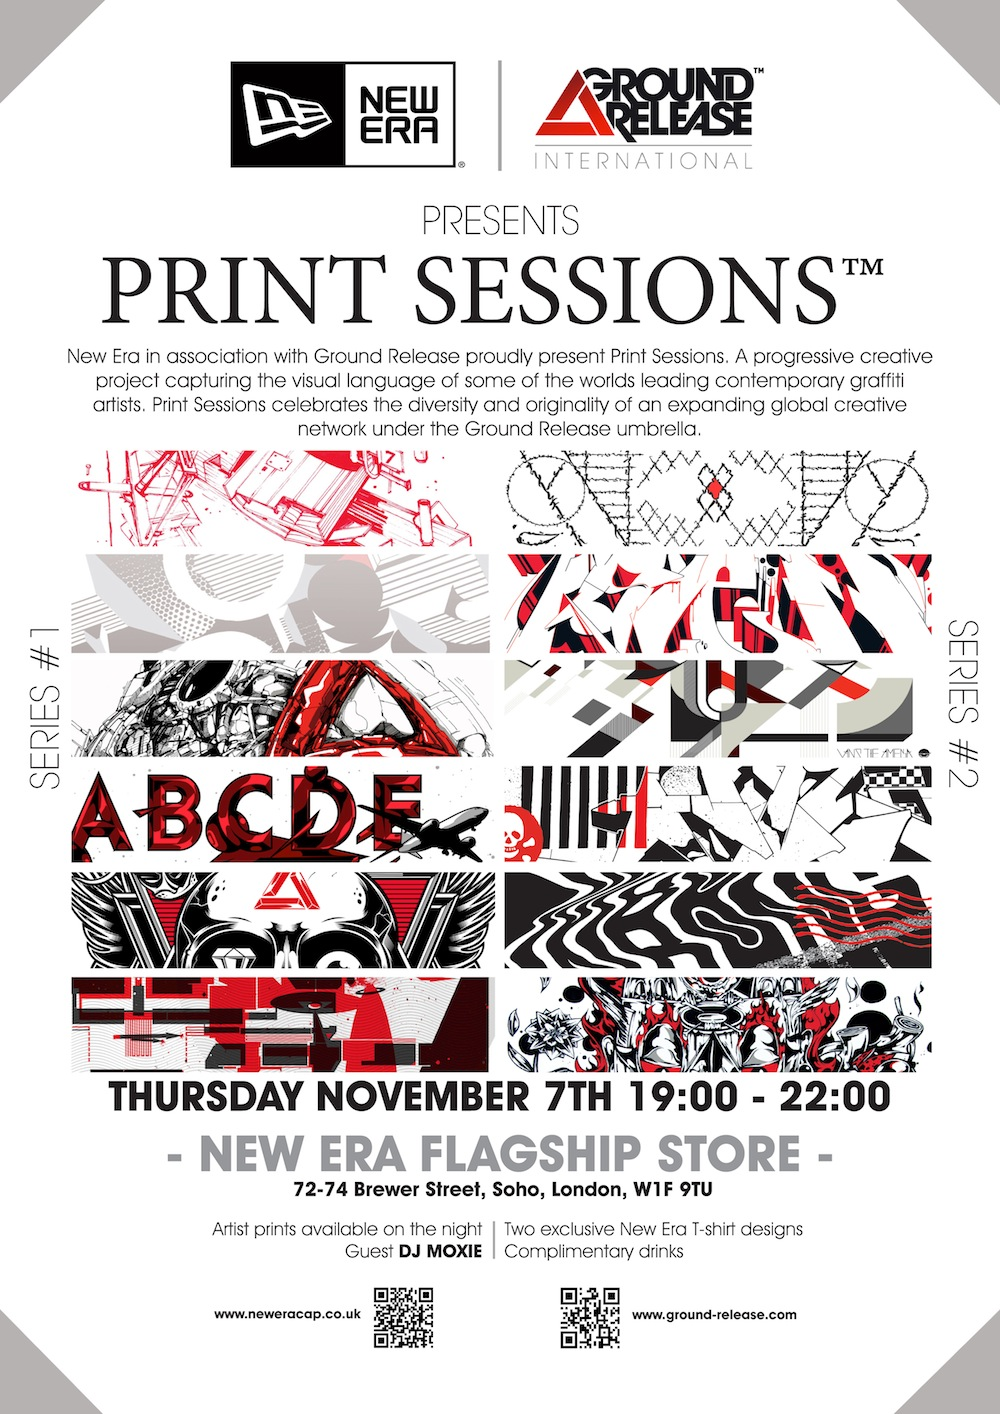 New Era x Ground Release Present Print Sessions